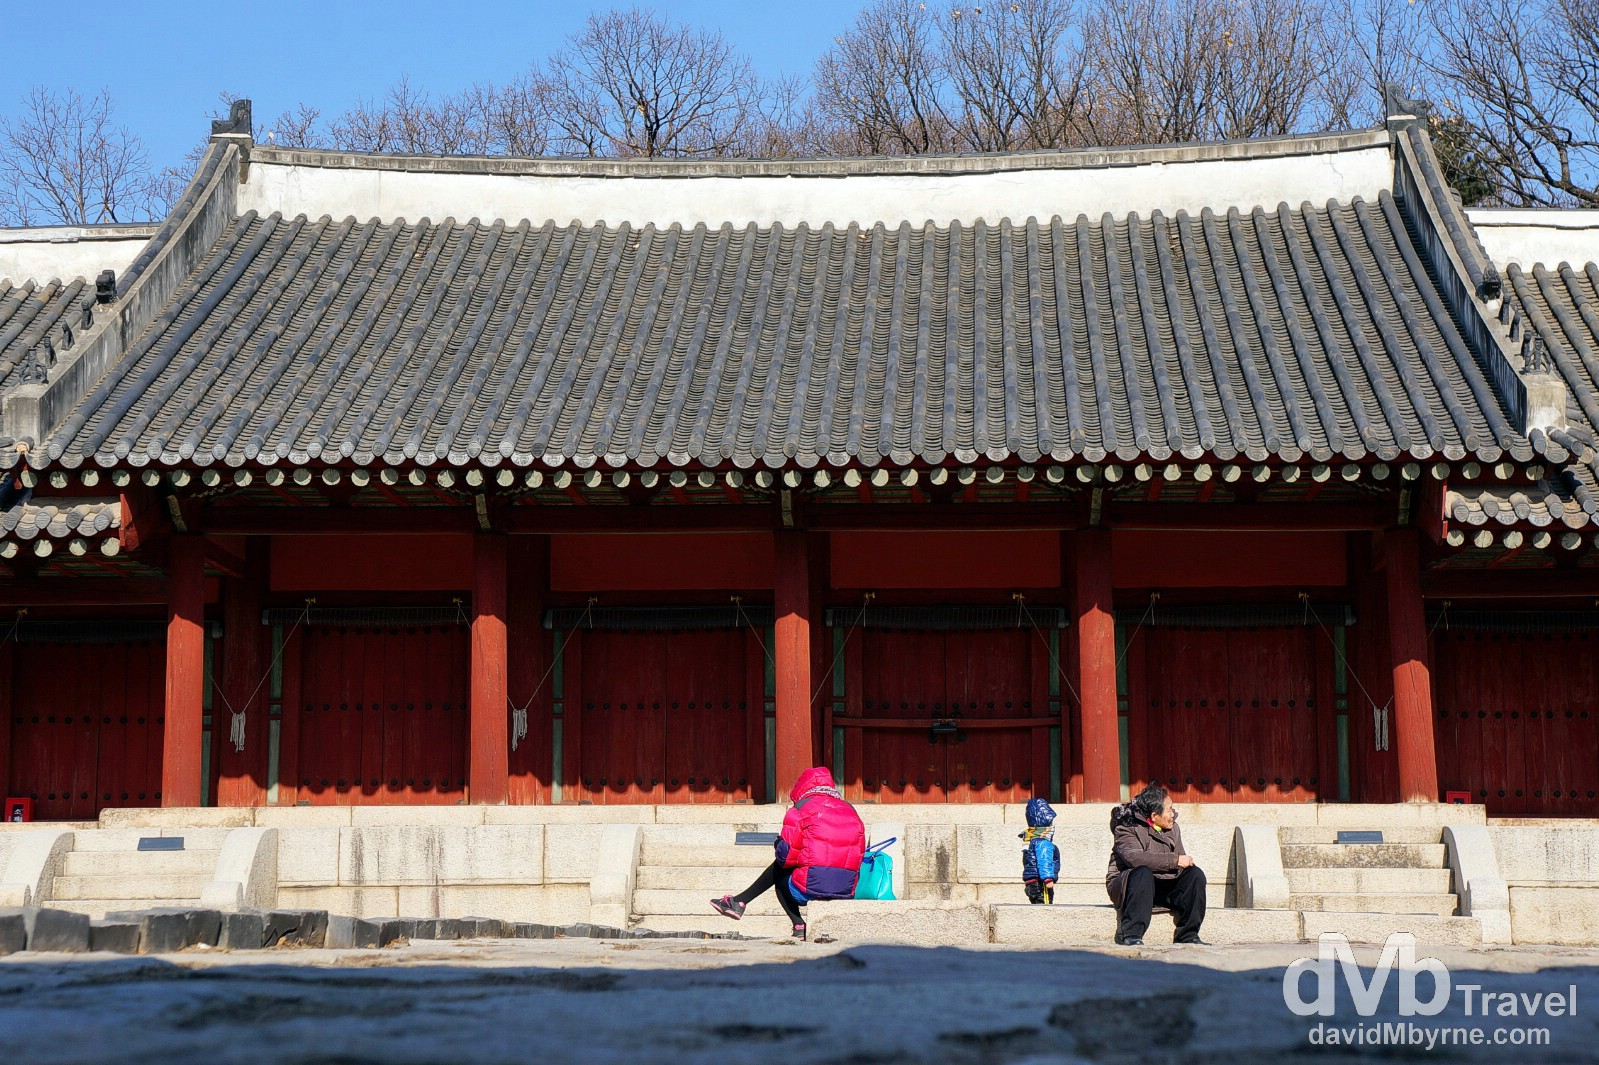 In the grounds of Yeongnyeongjeon in the UNESCO listed Jongmyo Shrine in Seoul, South Korea. January 18th, 2014.